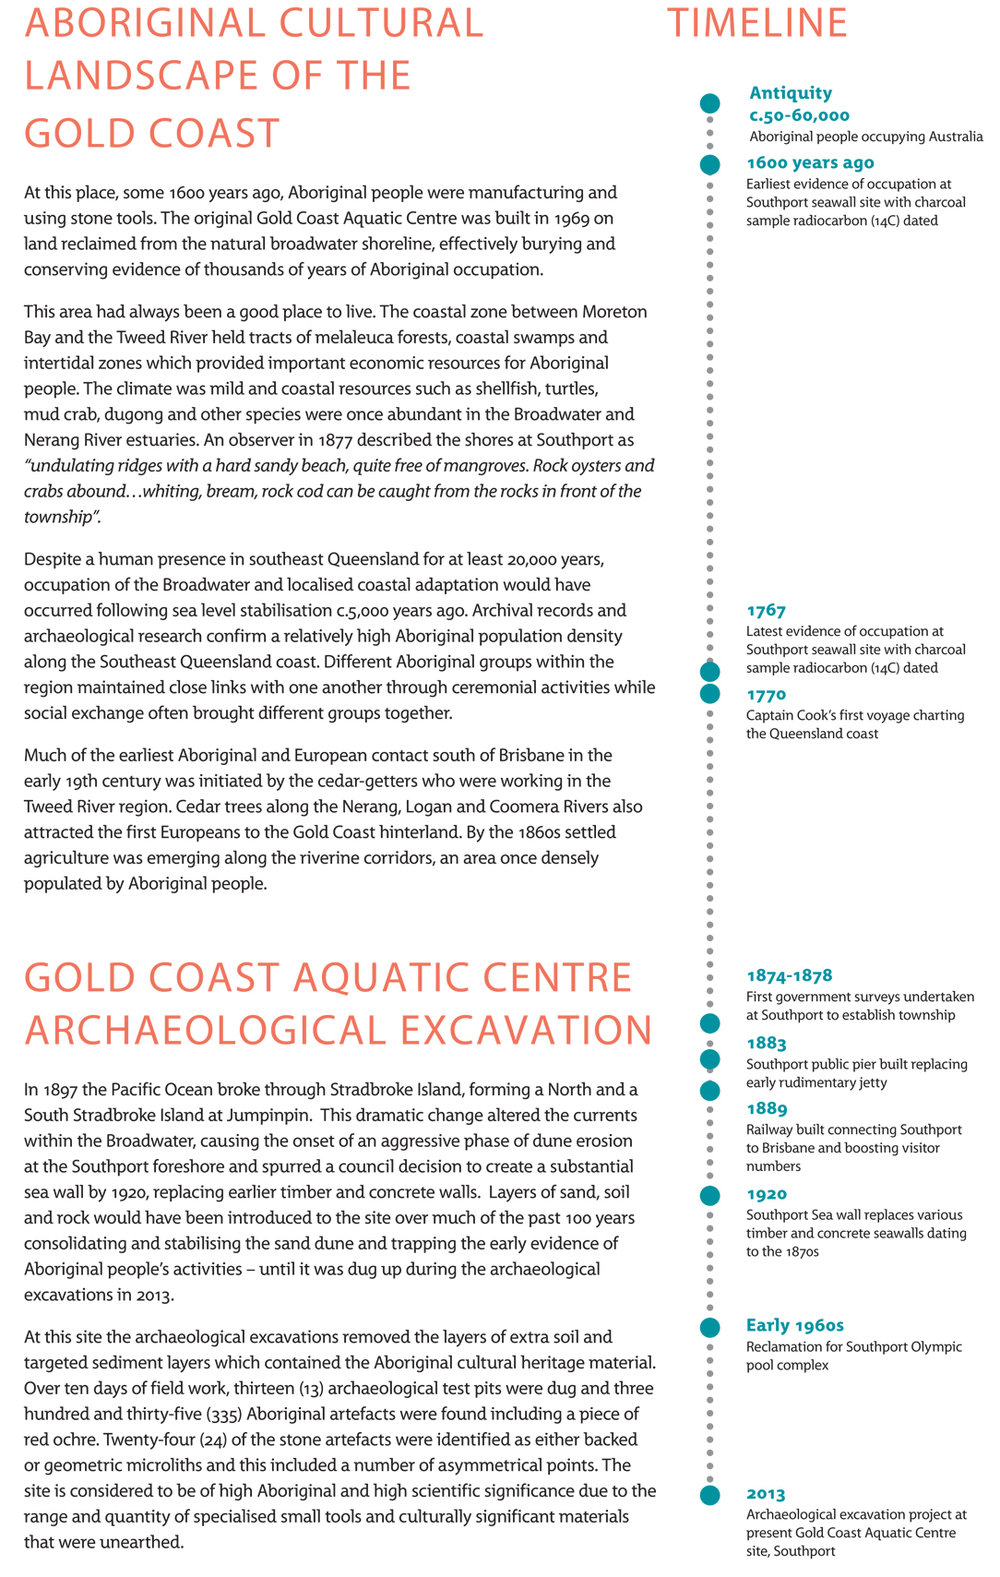 Aboriginal cultural heritage sites, Gold Coast Aquatic Center archaeological excavation permanent display